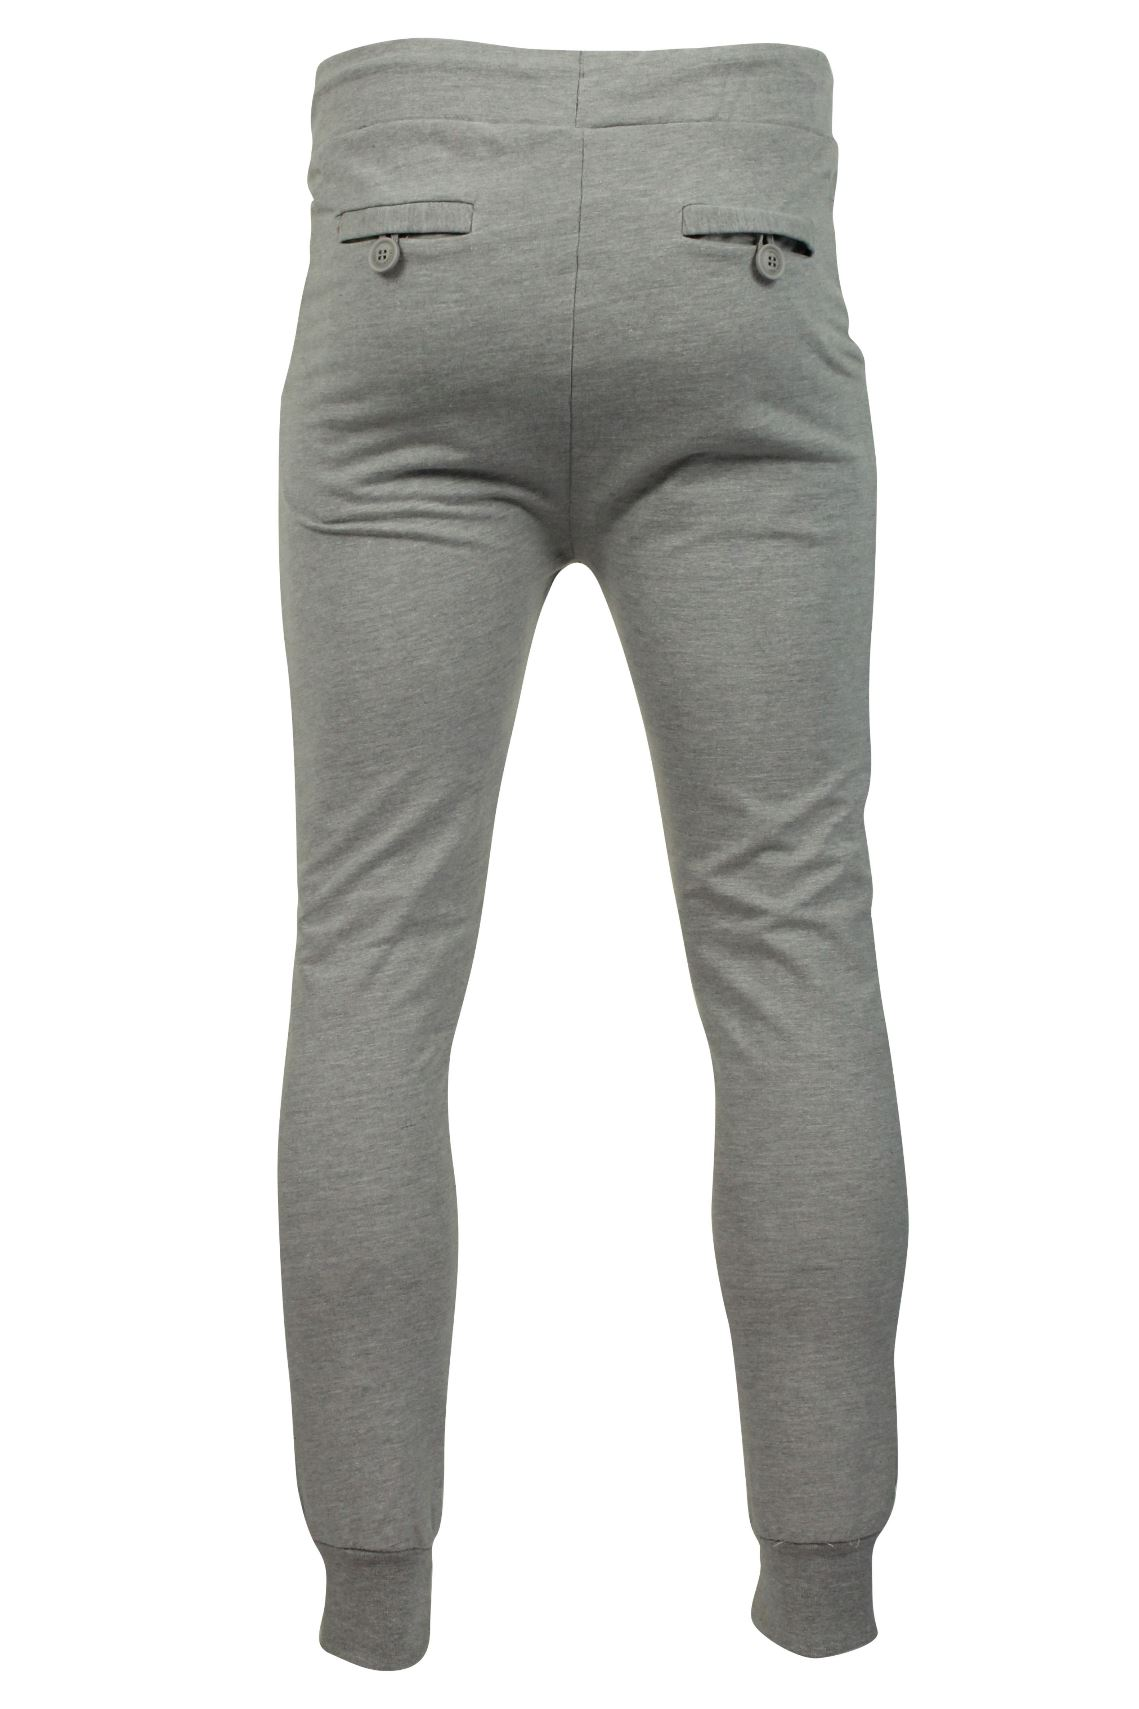 Mens-Skinny-Joggers-by-Crosshatch-039-Sidwell-039 thumbnail 11